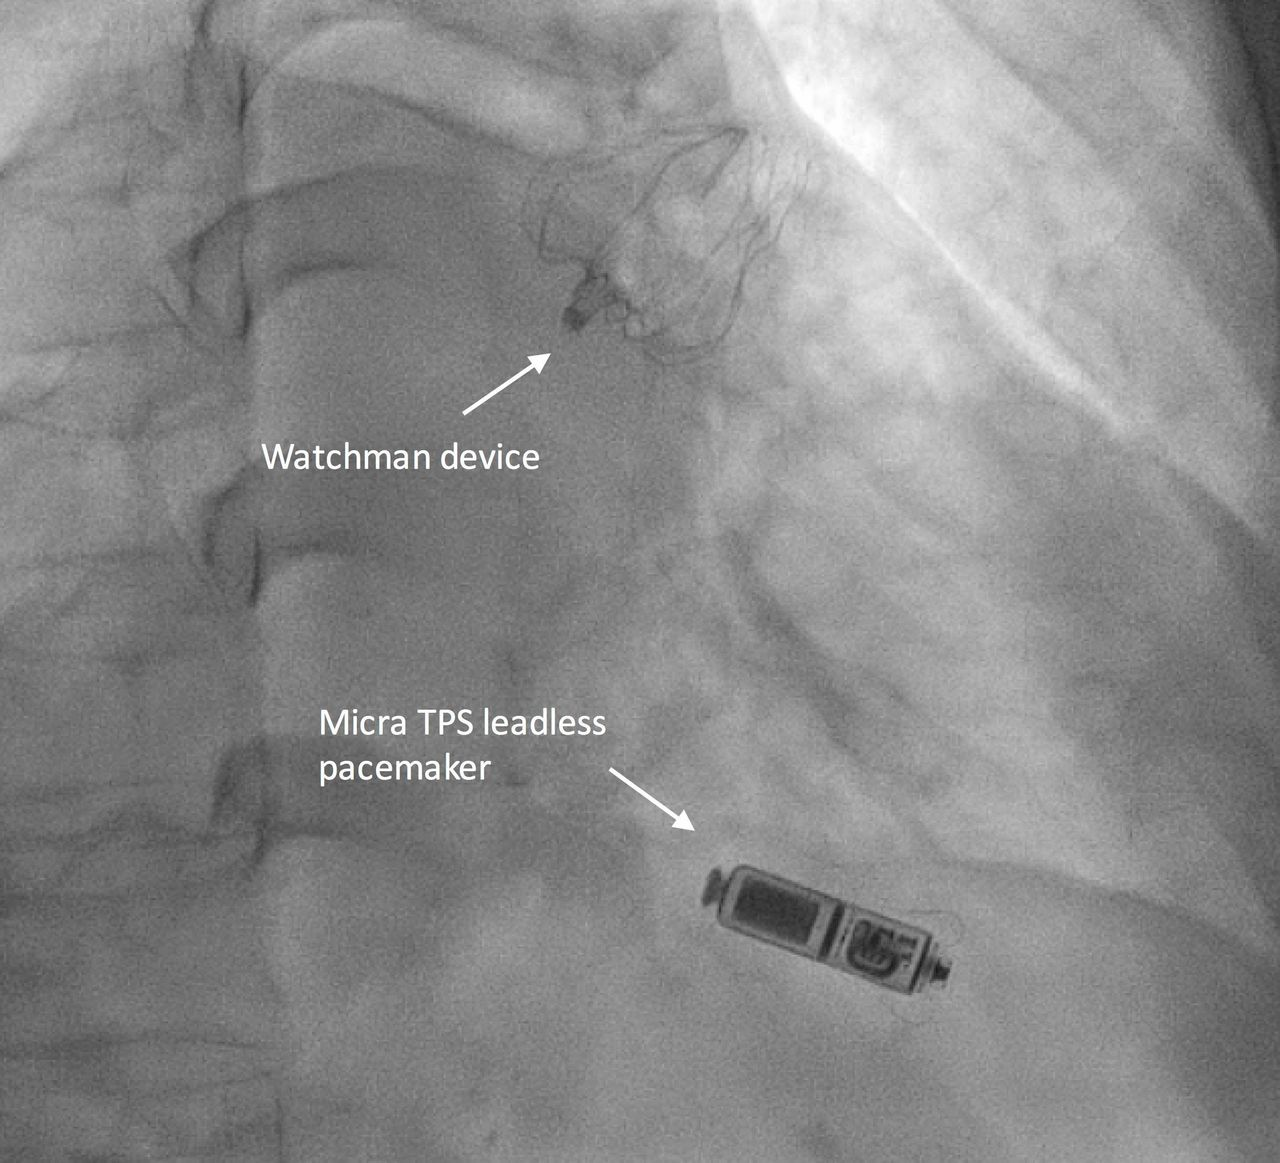 Implant Of A Left Atrial Appendage Occluder Device